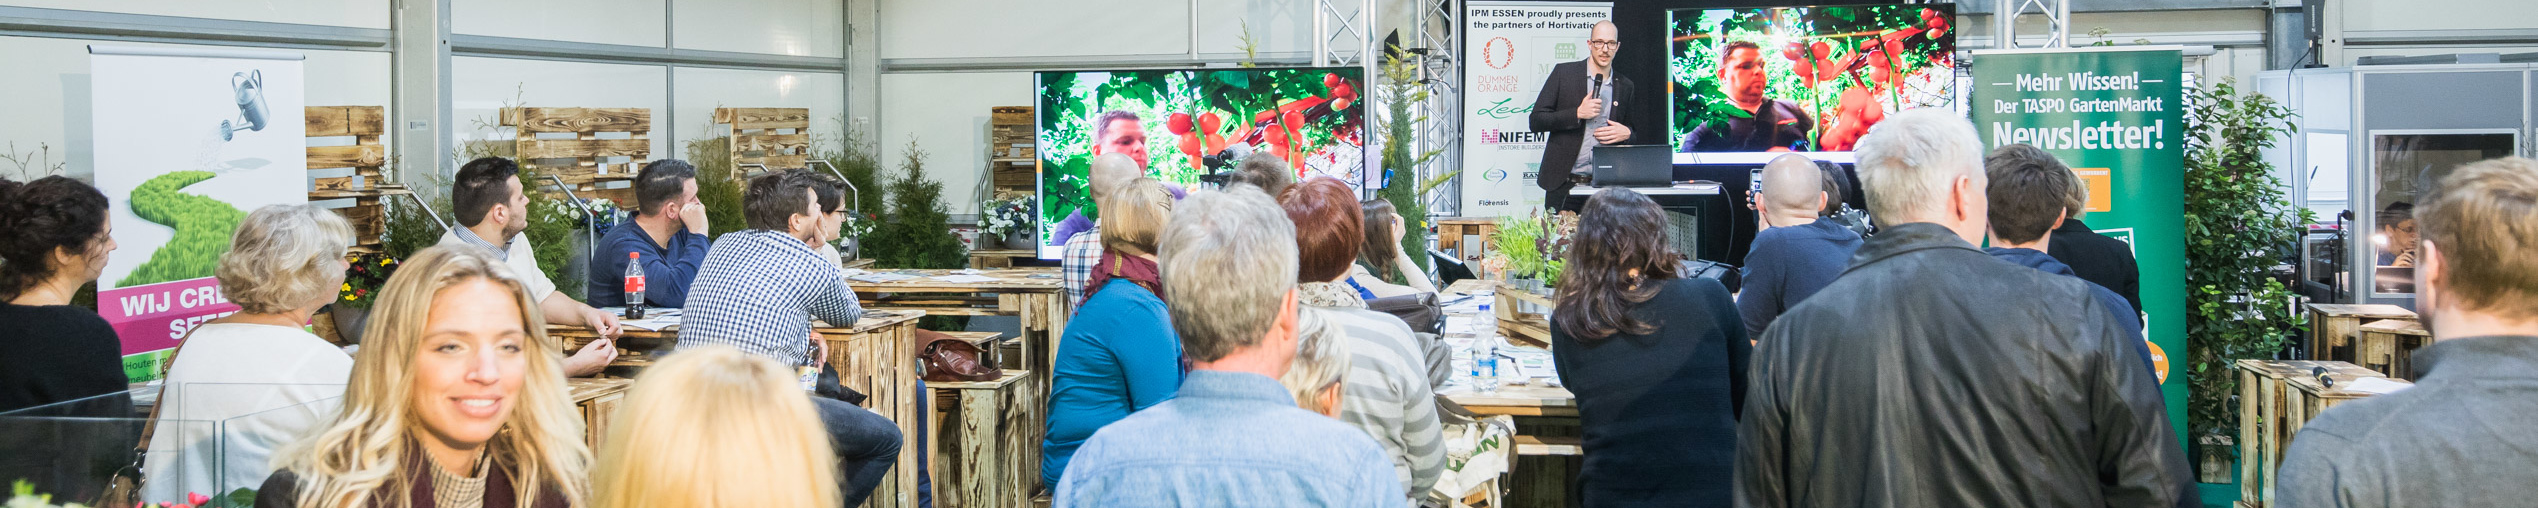 IPM ESSEN:  		Speakers Corner